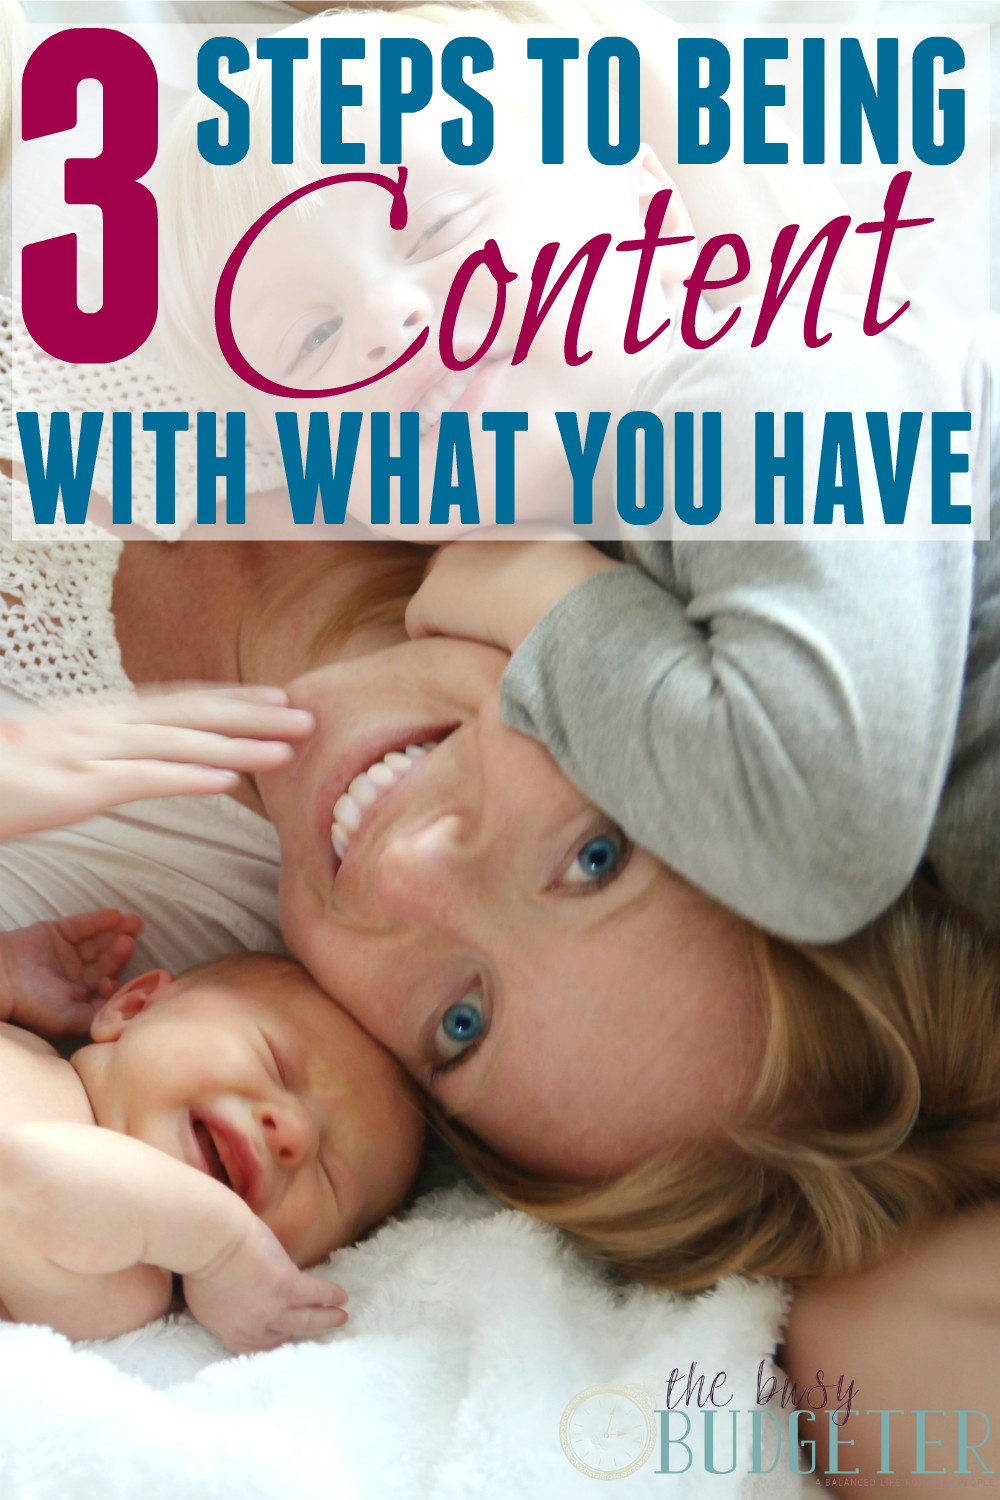 Finding Contentment - Three Steps to Being Content With What You Have. Hahahaha. Anyone on Pinterest can relate to this. Pinterest Problems. 😄